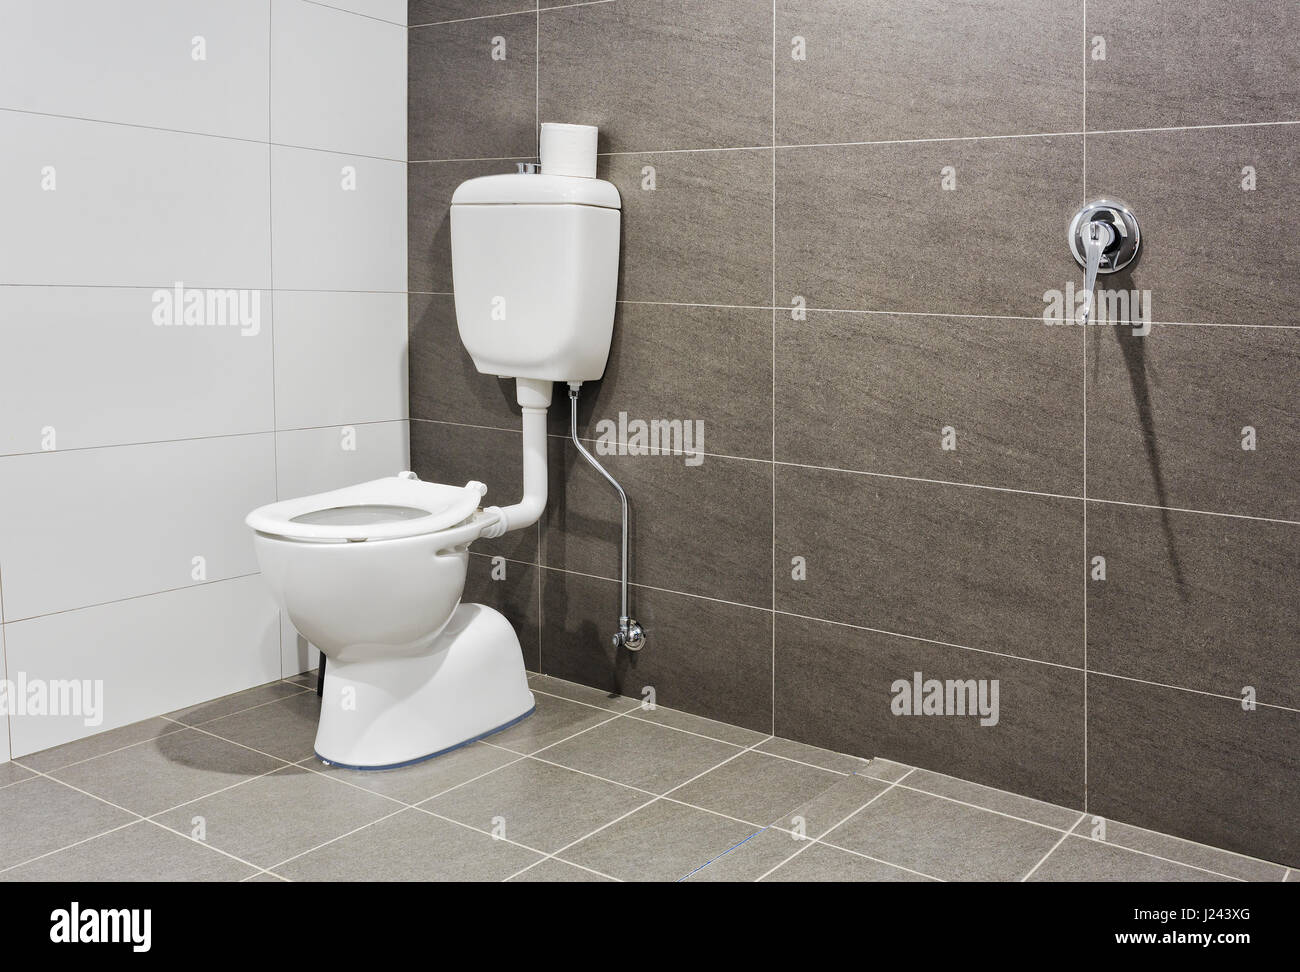 WHite porcelain toilet seat in a modern bathroom for disabled people giving extra space and access. - Stock Image